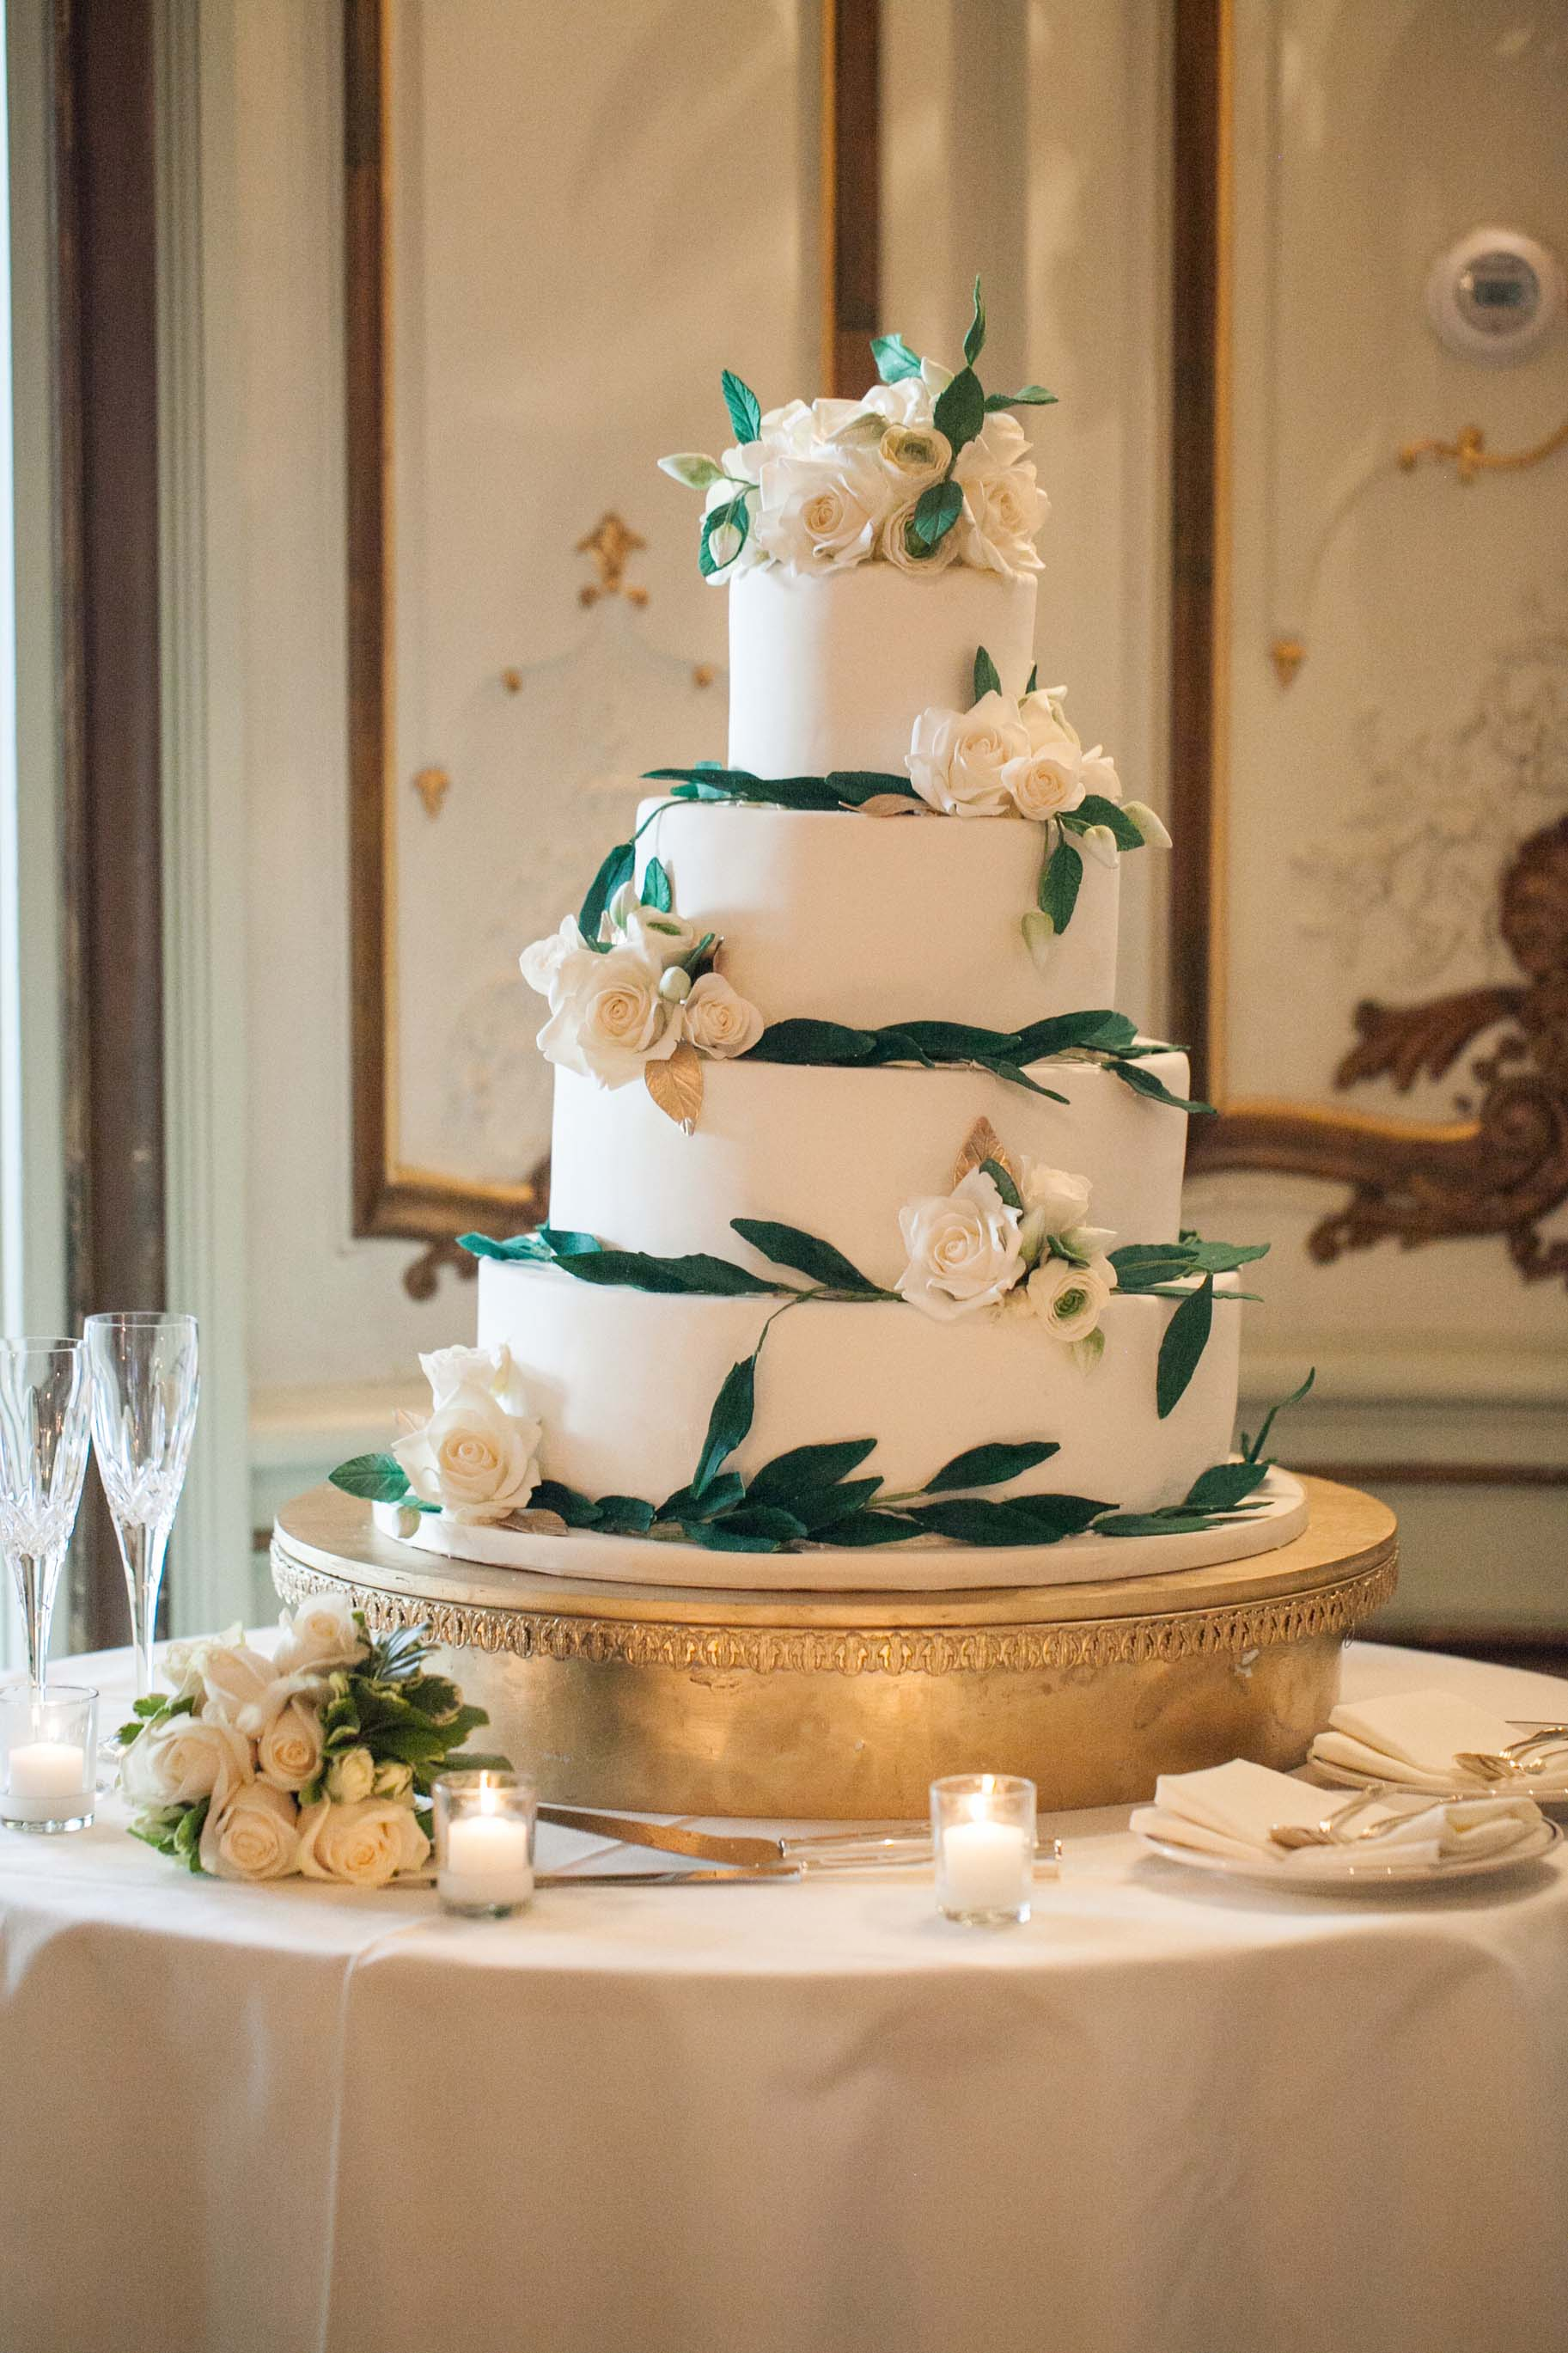 Beautiful wedding cake by My Daughter's Cakes Dumont, NJ